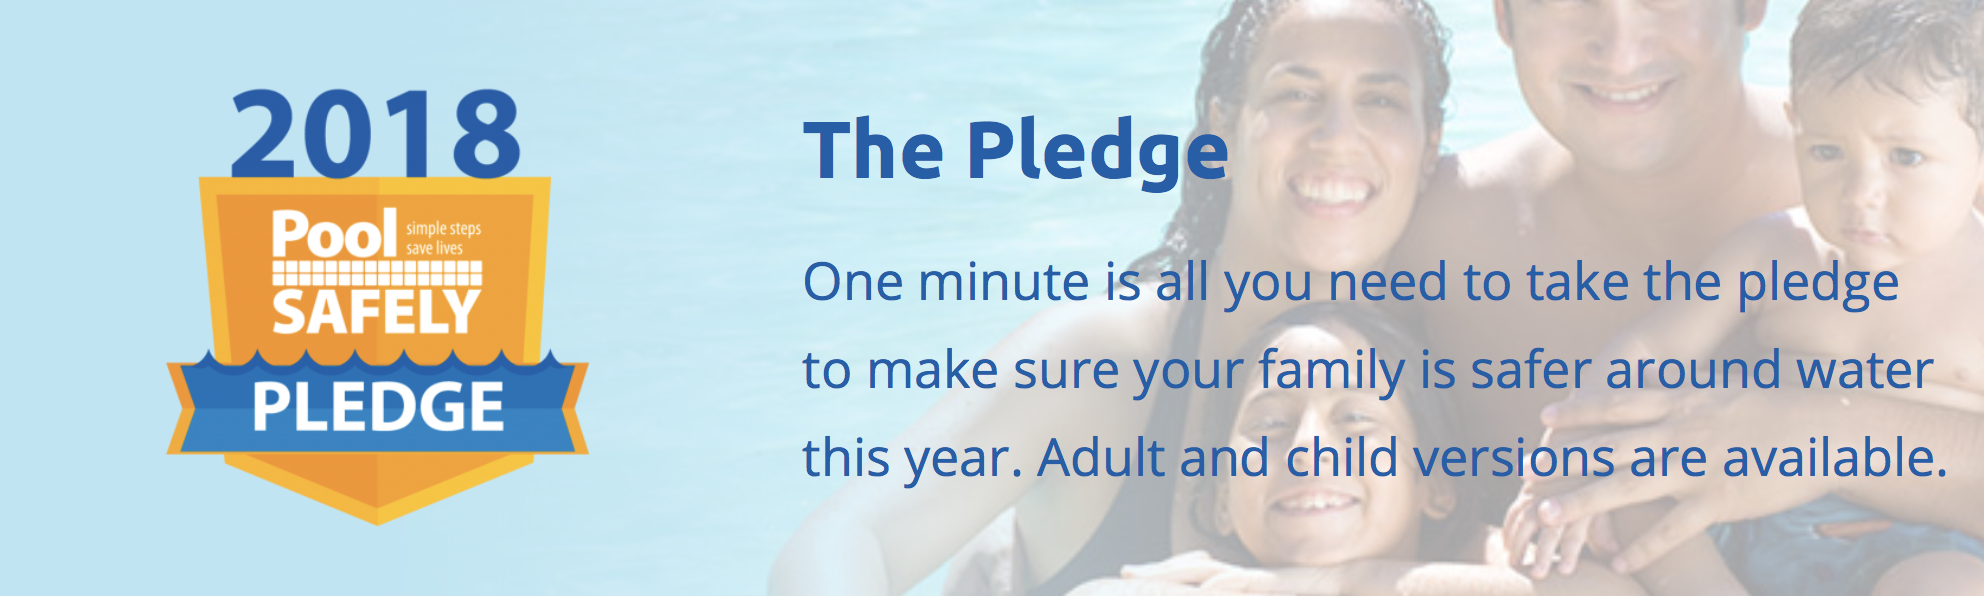 Water safety, Mimi Conner, AquaFit, Plano, Pool Safely Pledge